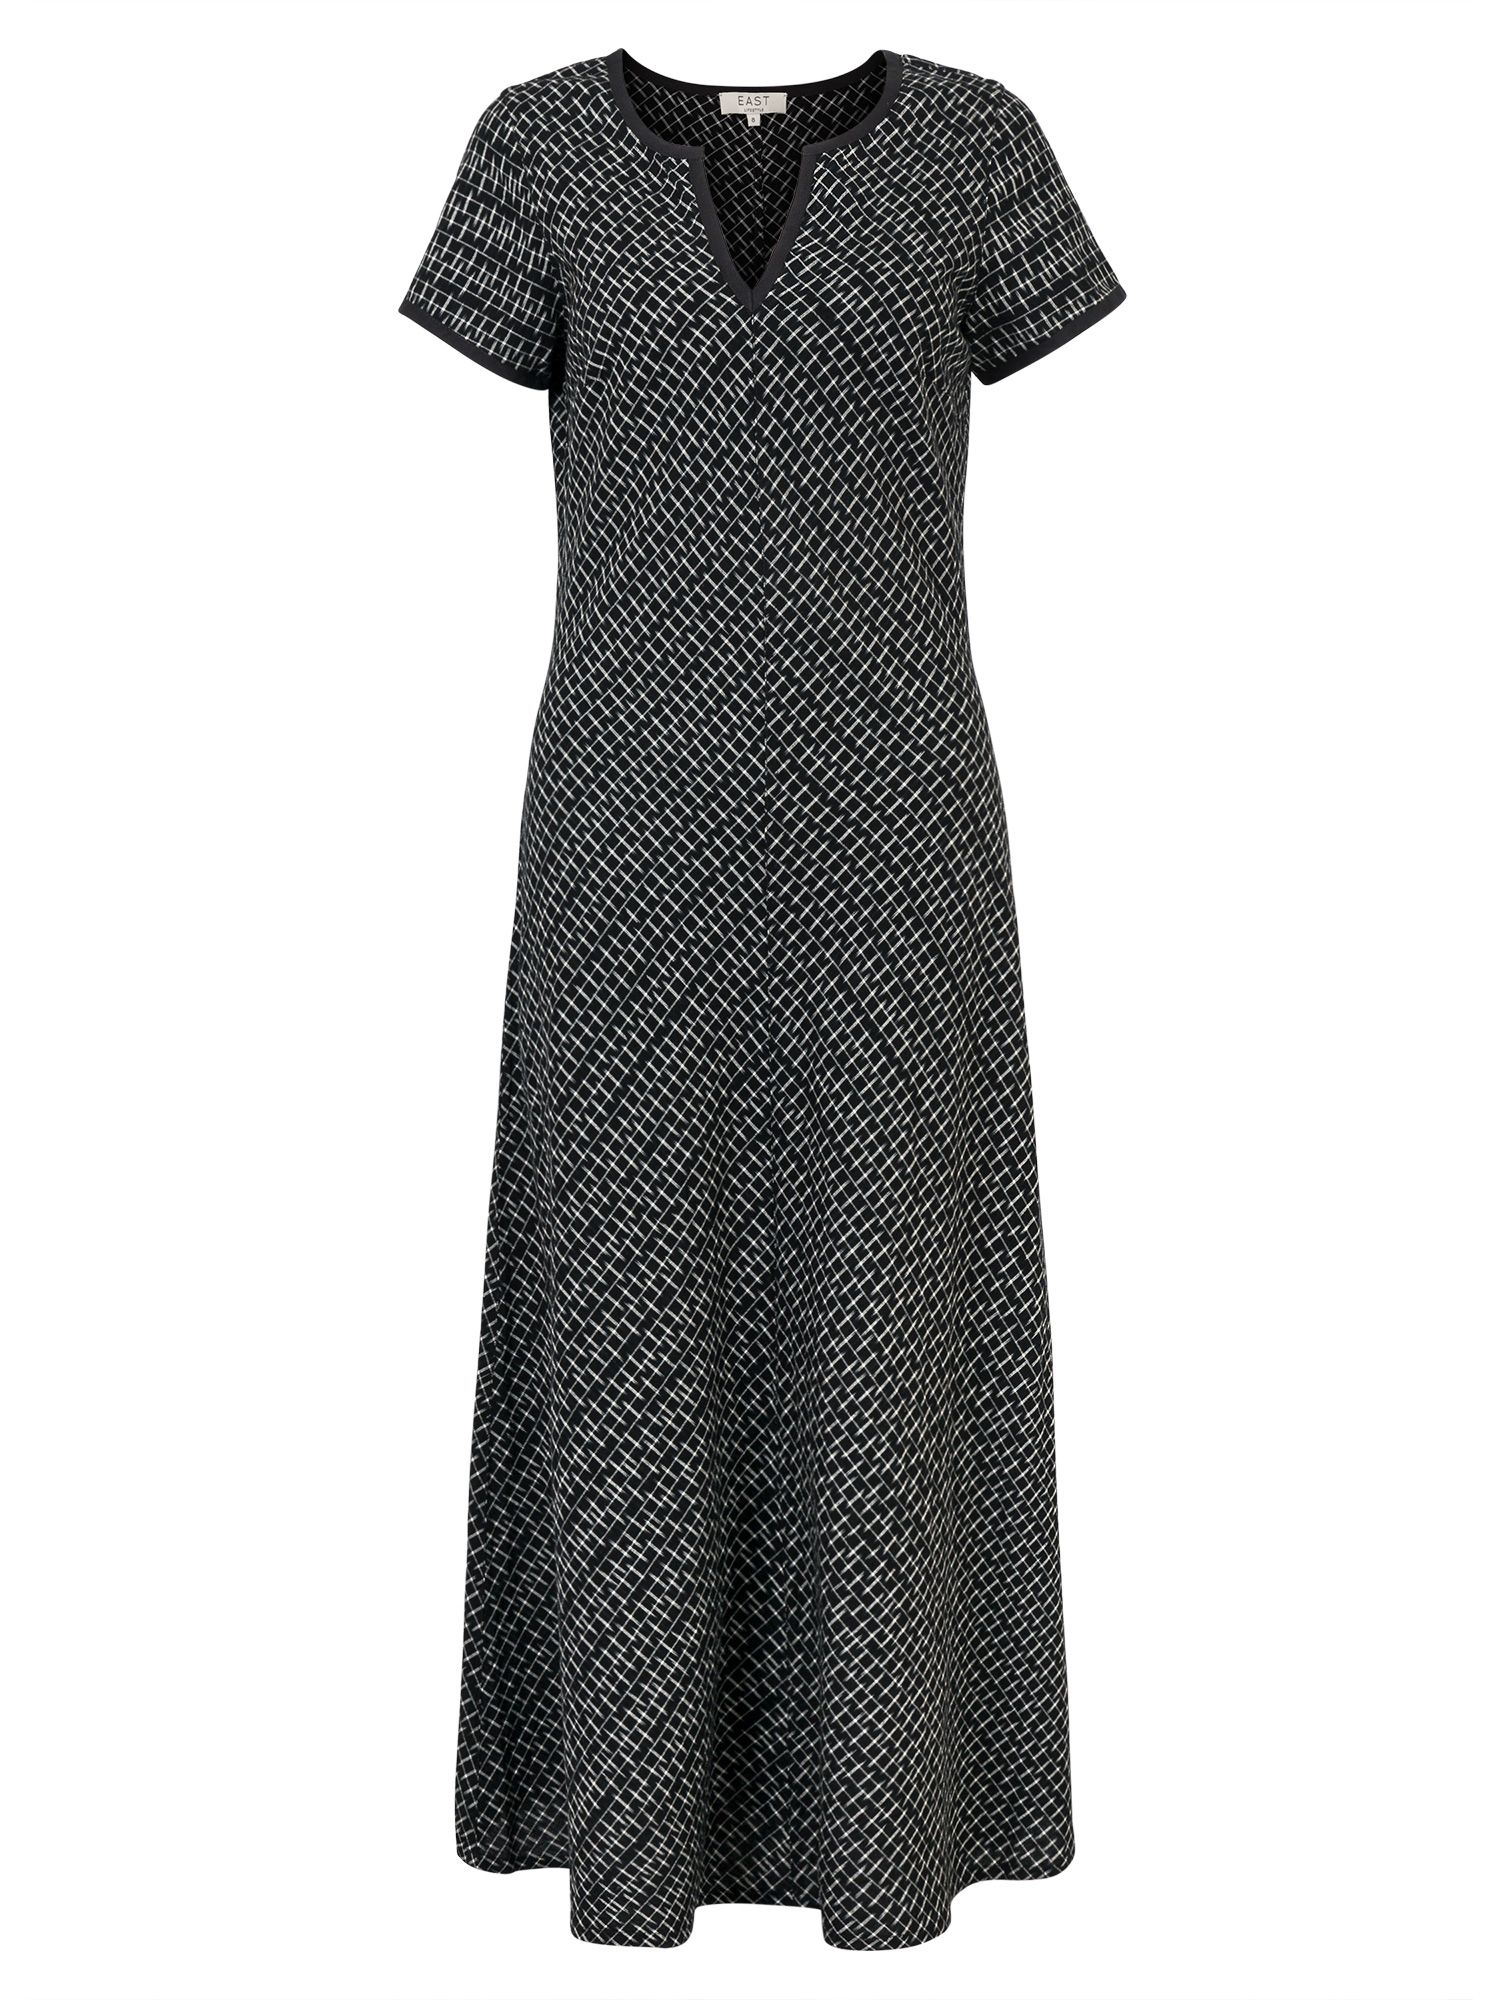 East Ikat Bias Cut Dress, Black